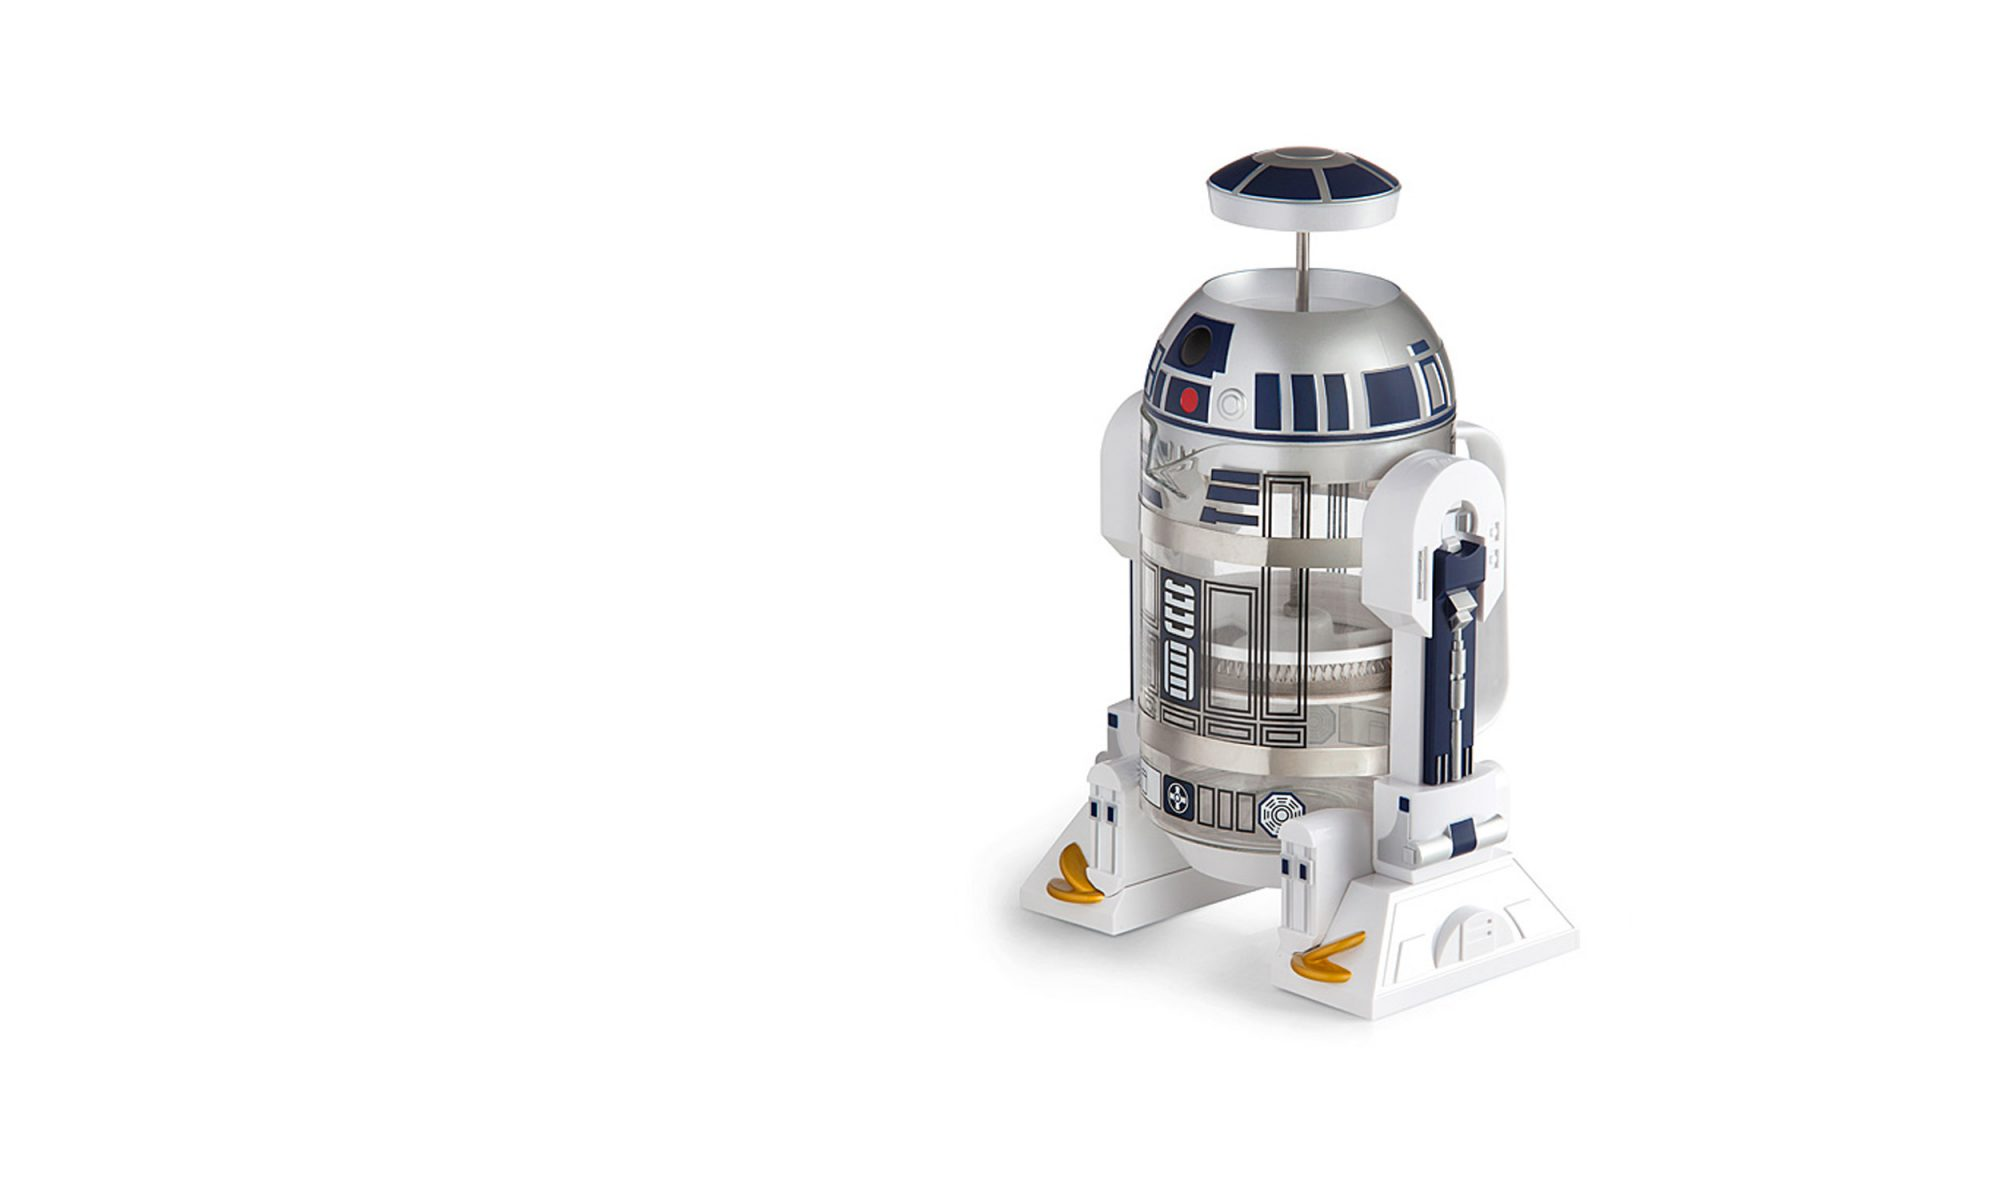 EC: This R2-D2 French Press Is Every Star Wars Fan's Caffeine Dream